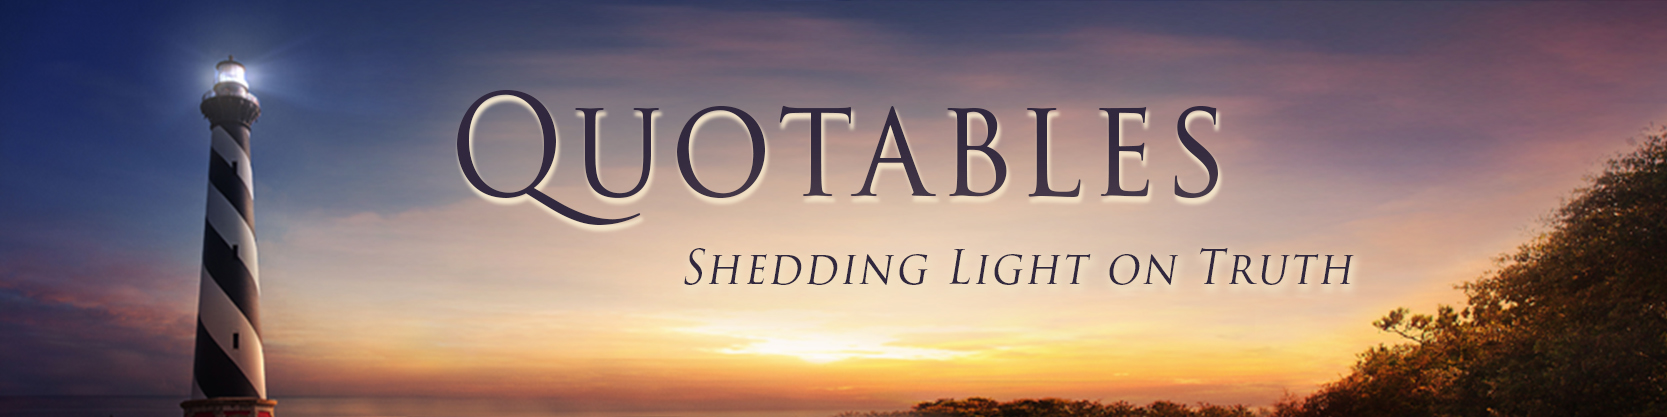 Quotables banner website lighthouse